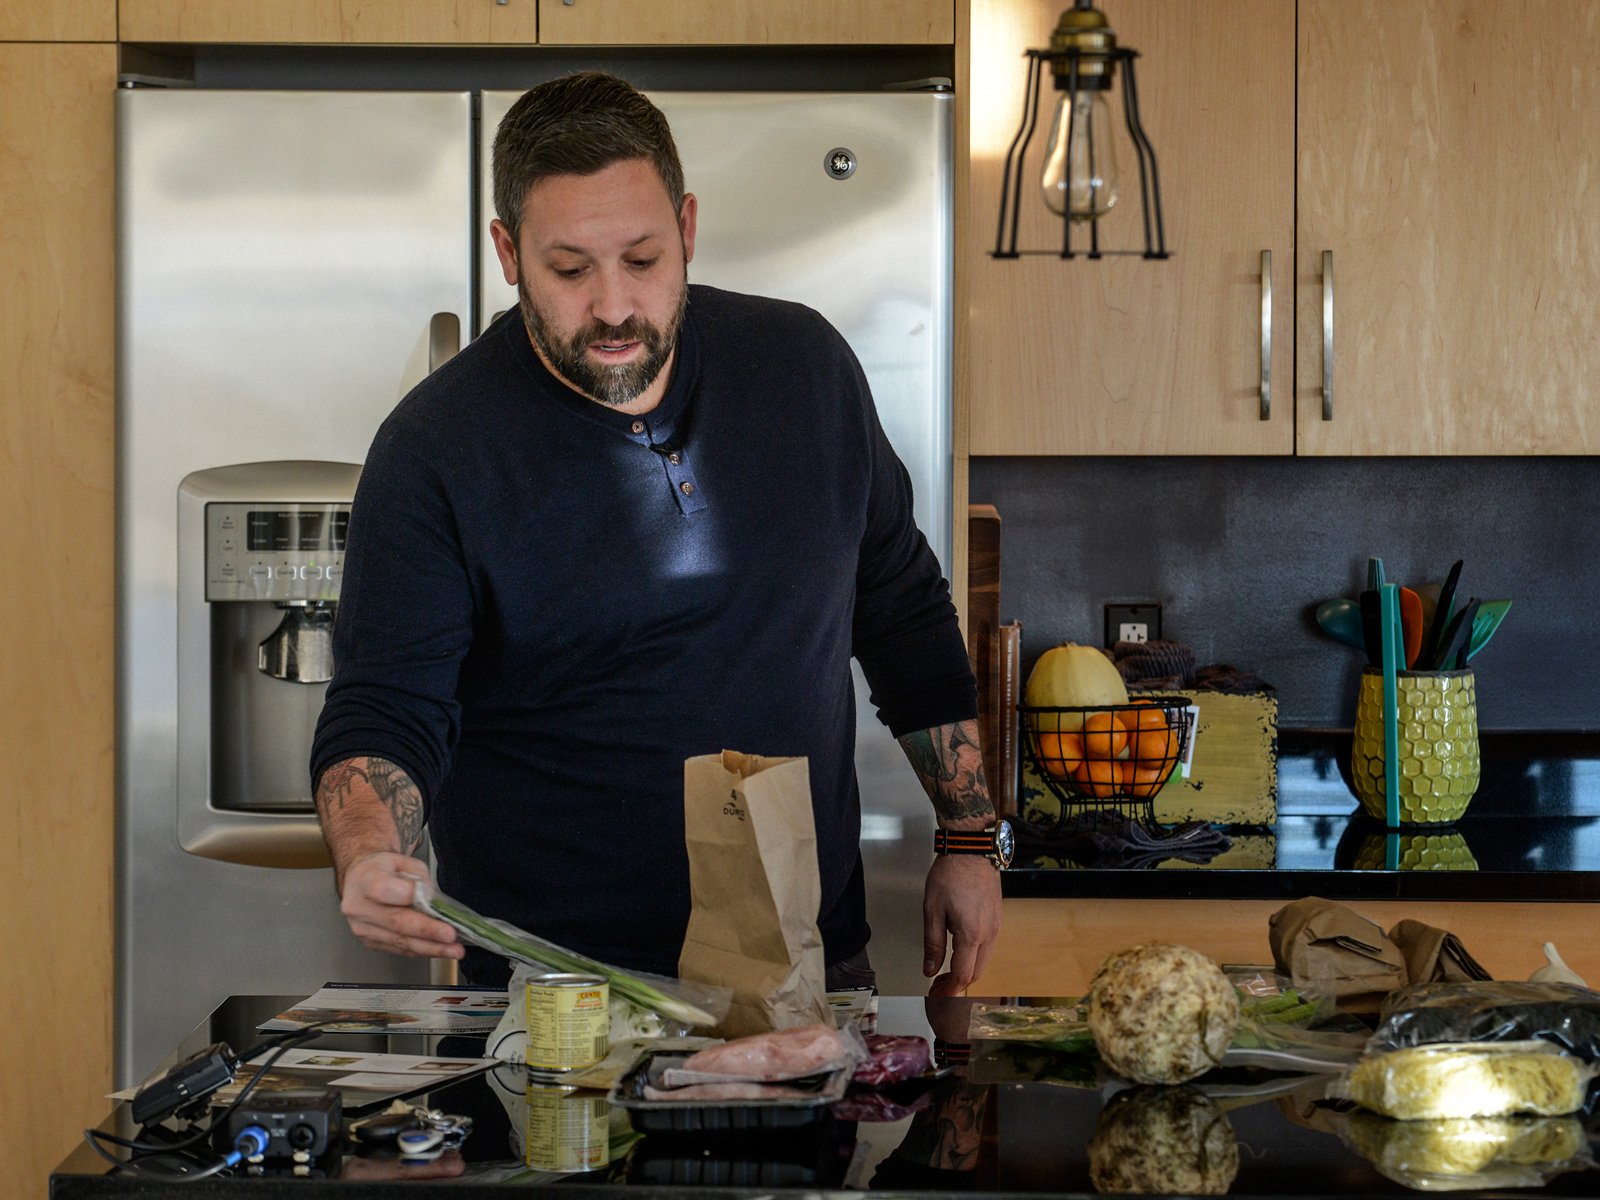 'Top Chef' Alum Mike Isabella Accused of Sexual Harassment in New Lawsuit